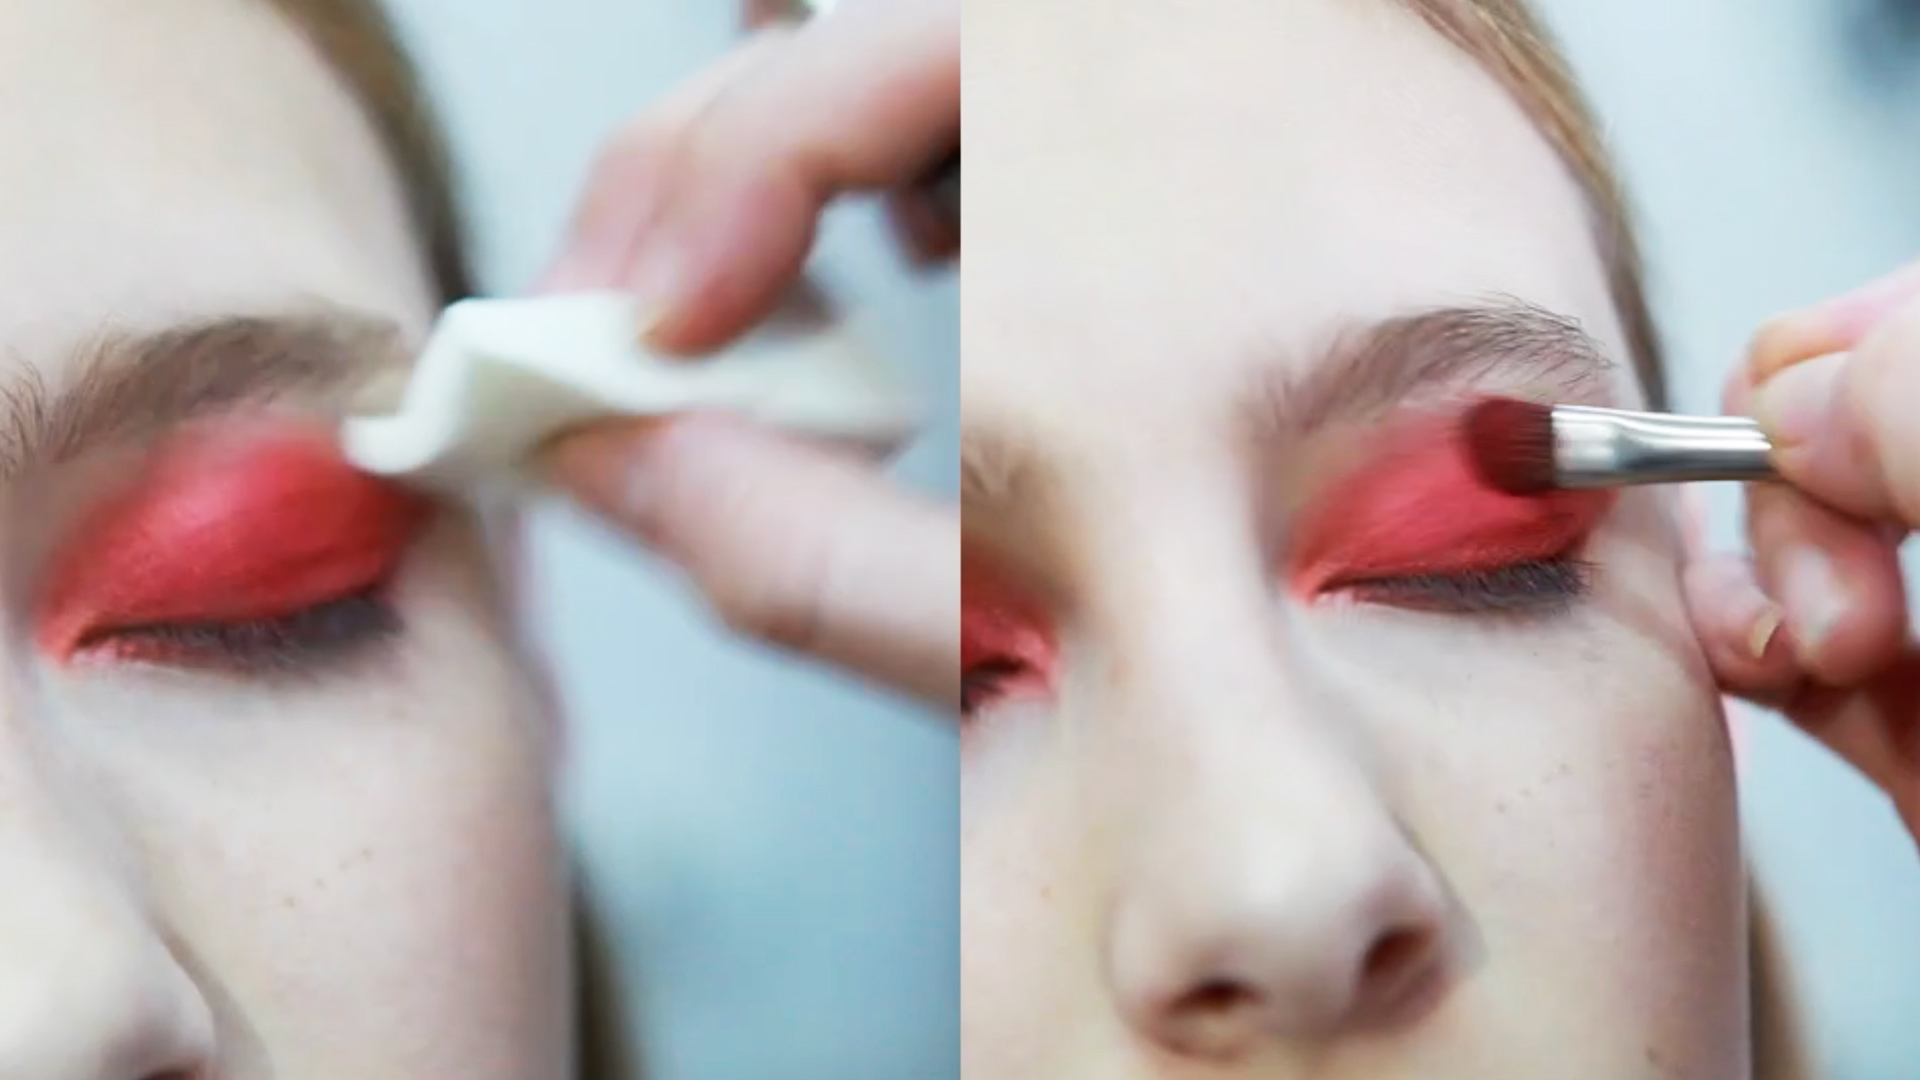 A makeup artist applies bright red eyeshadow to a model